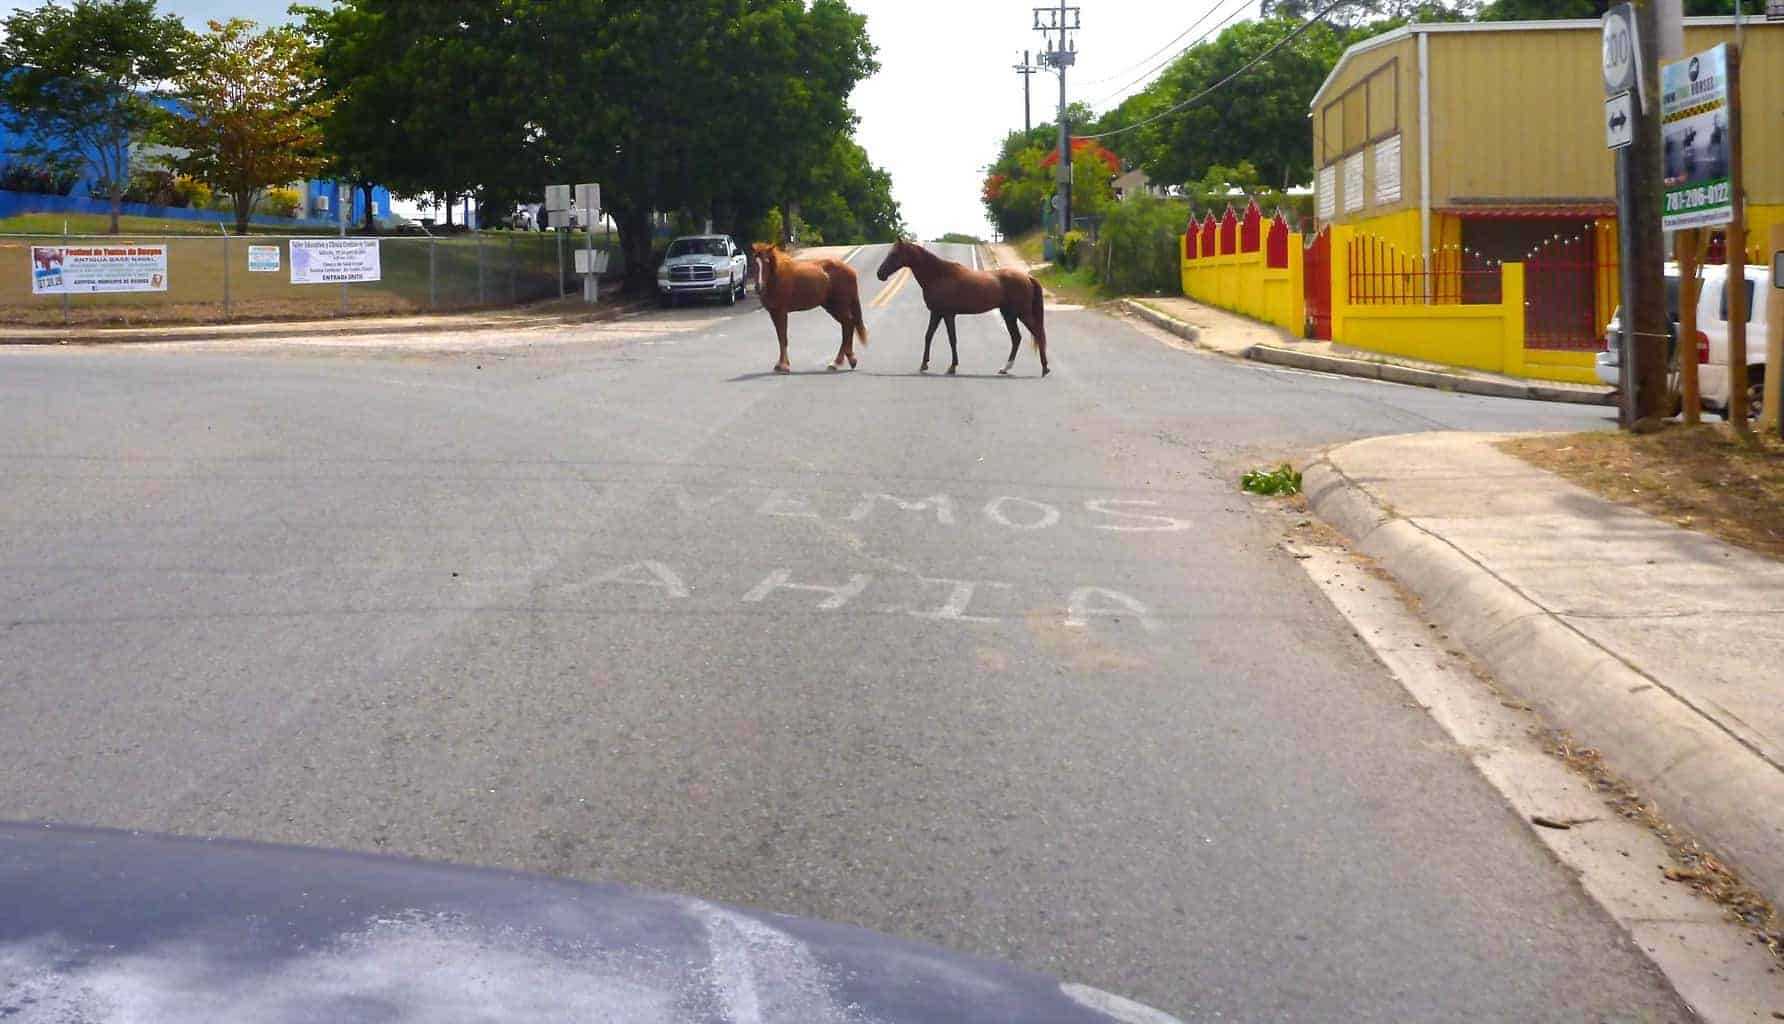 Horses on Road Vieques